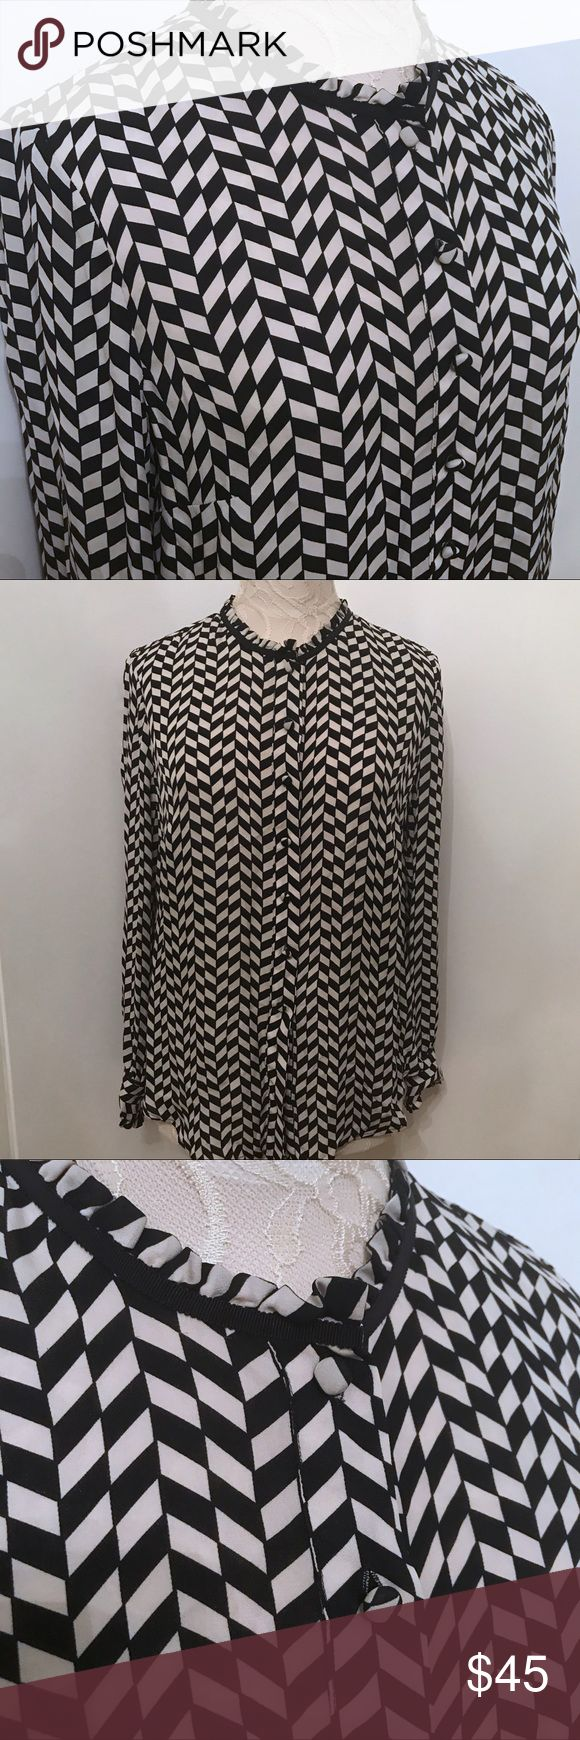 J Crew Silk Black & White Blouse Top sz 8 Light weight 100% silk blouse from J Crew. Tuxedo style collar. Size 8.  Missing last button, otherwise in excellent condition. J. Crew Tops